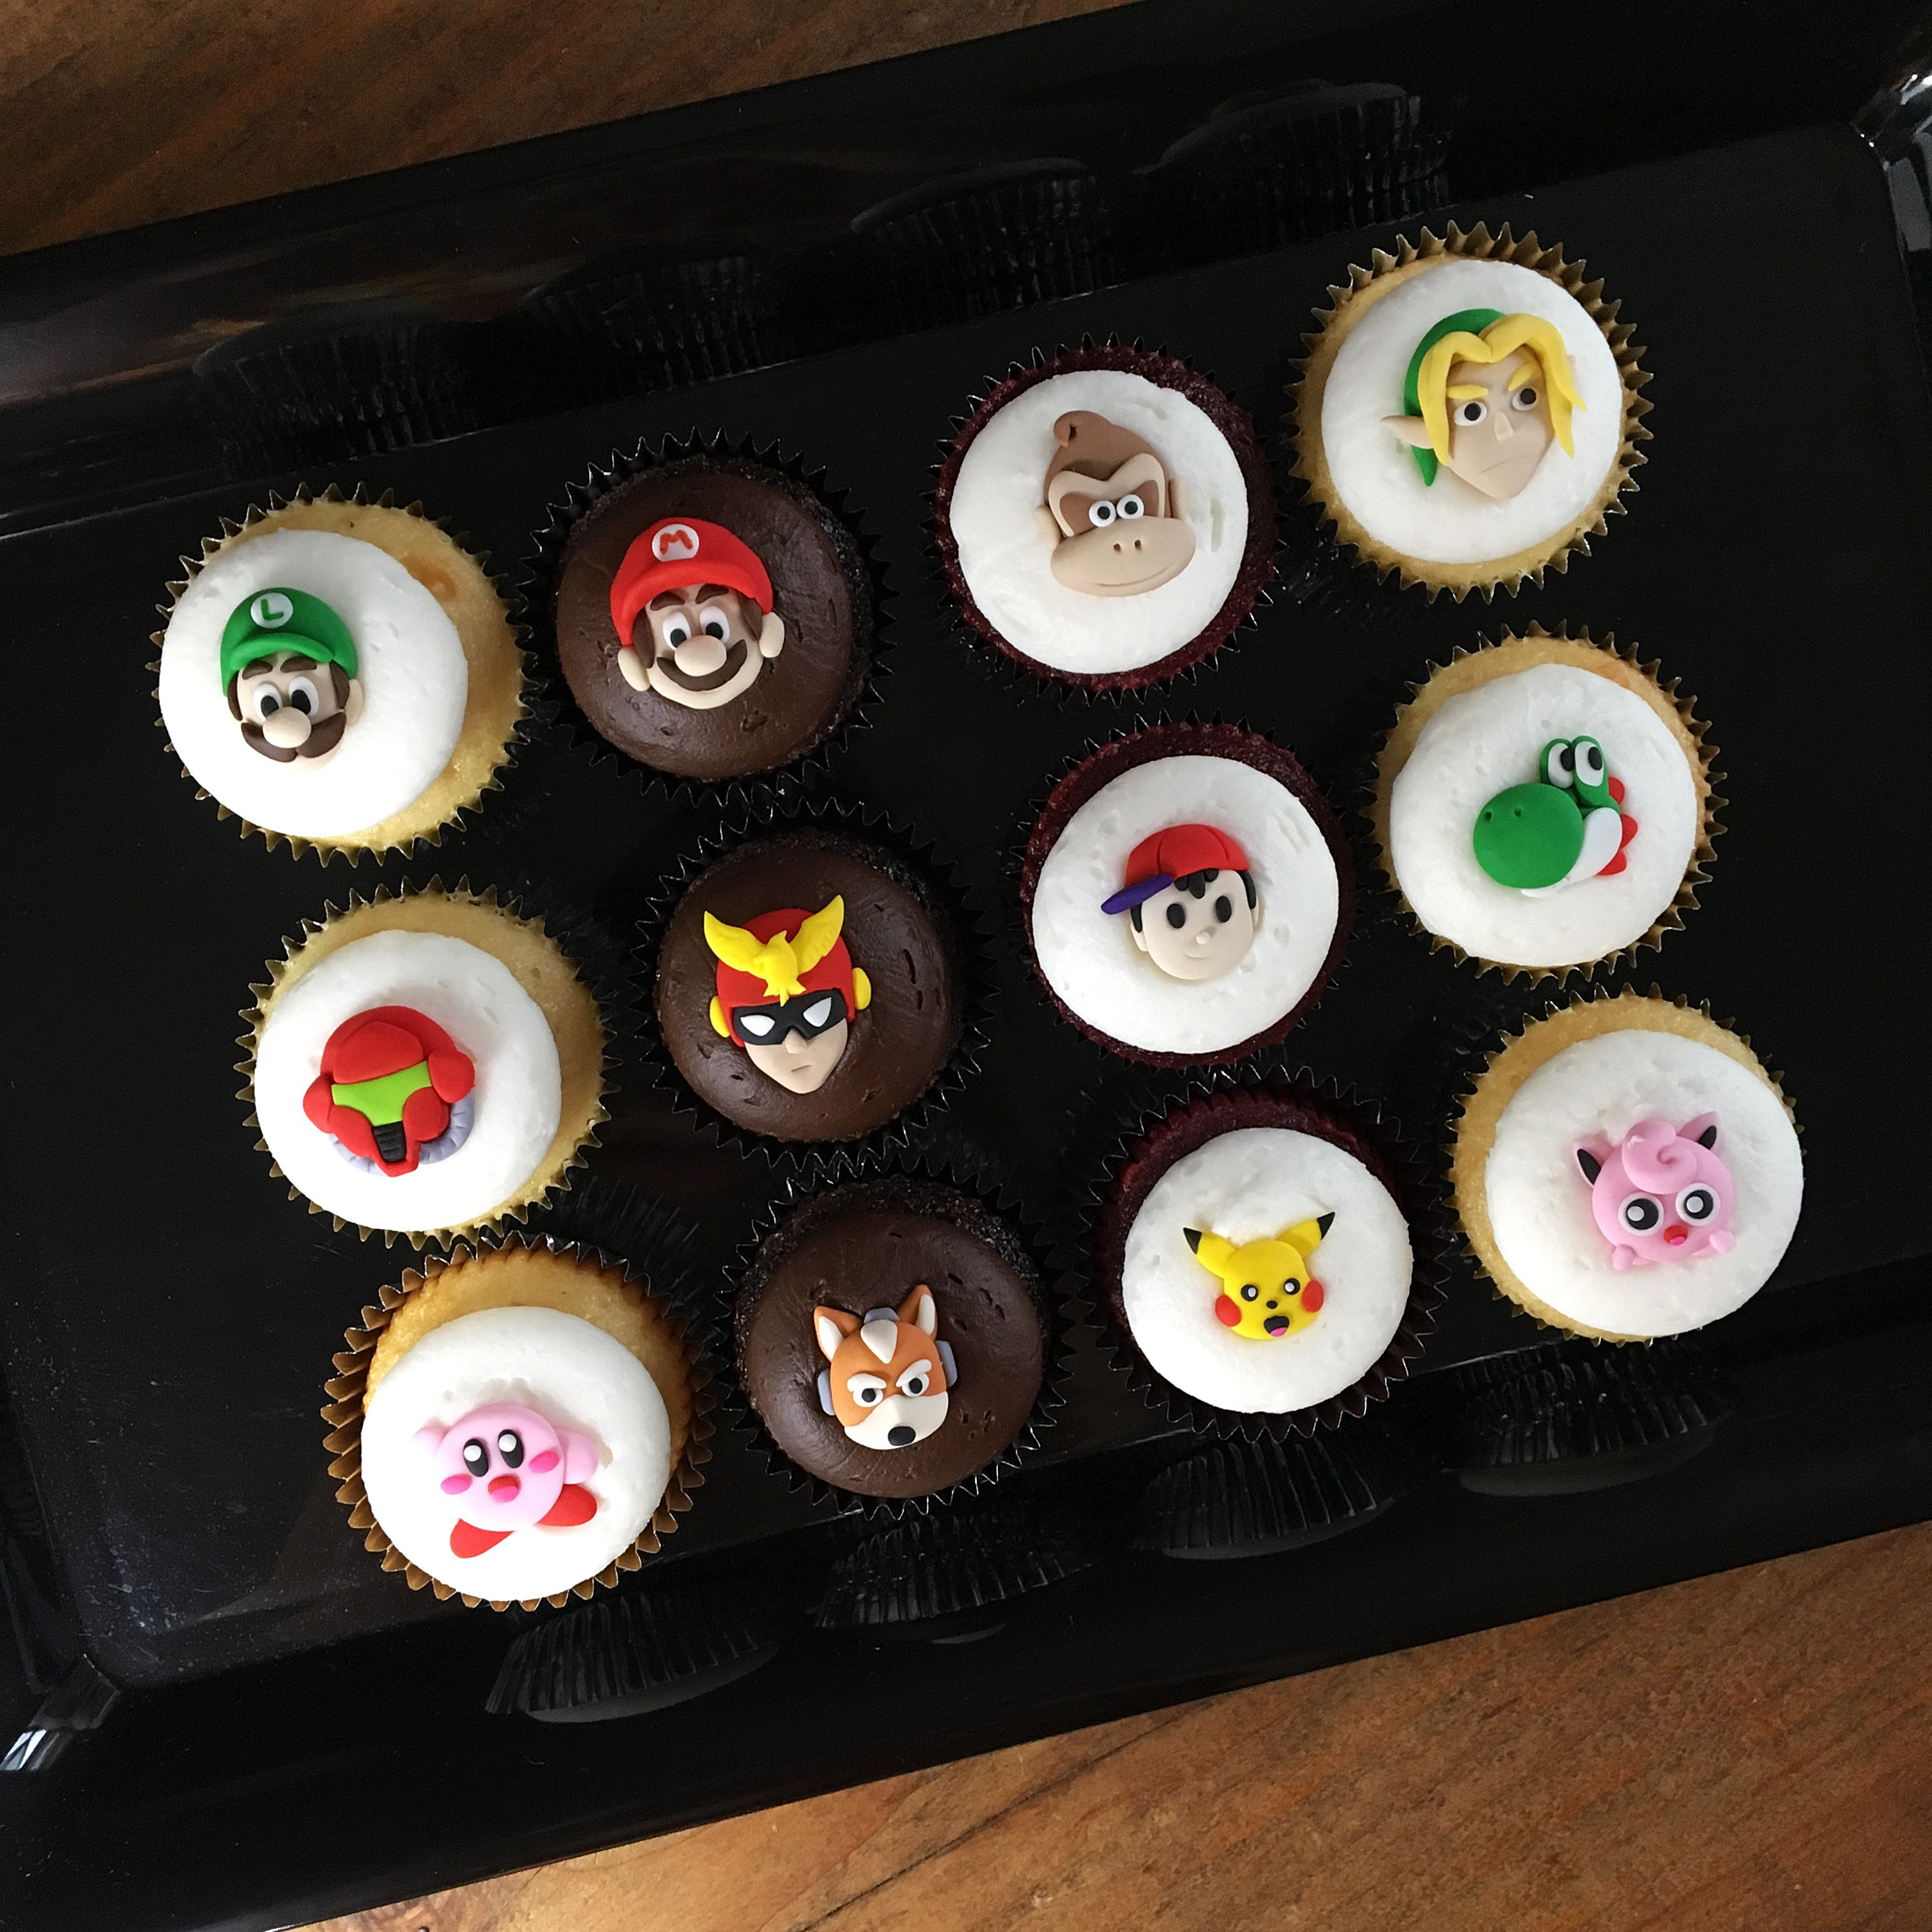 Kathleen Yeh Yeh Cakes Cupcakes 14